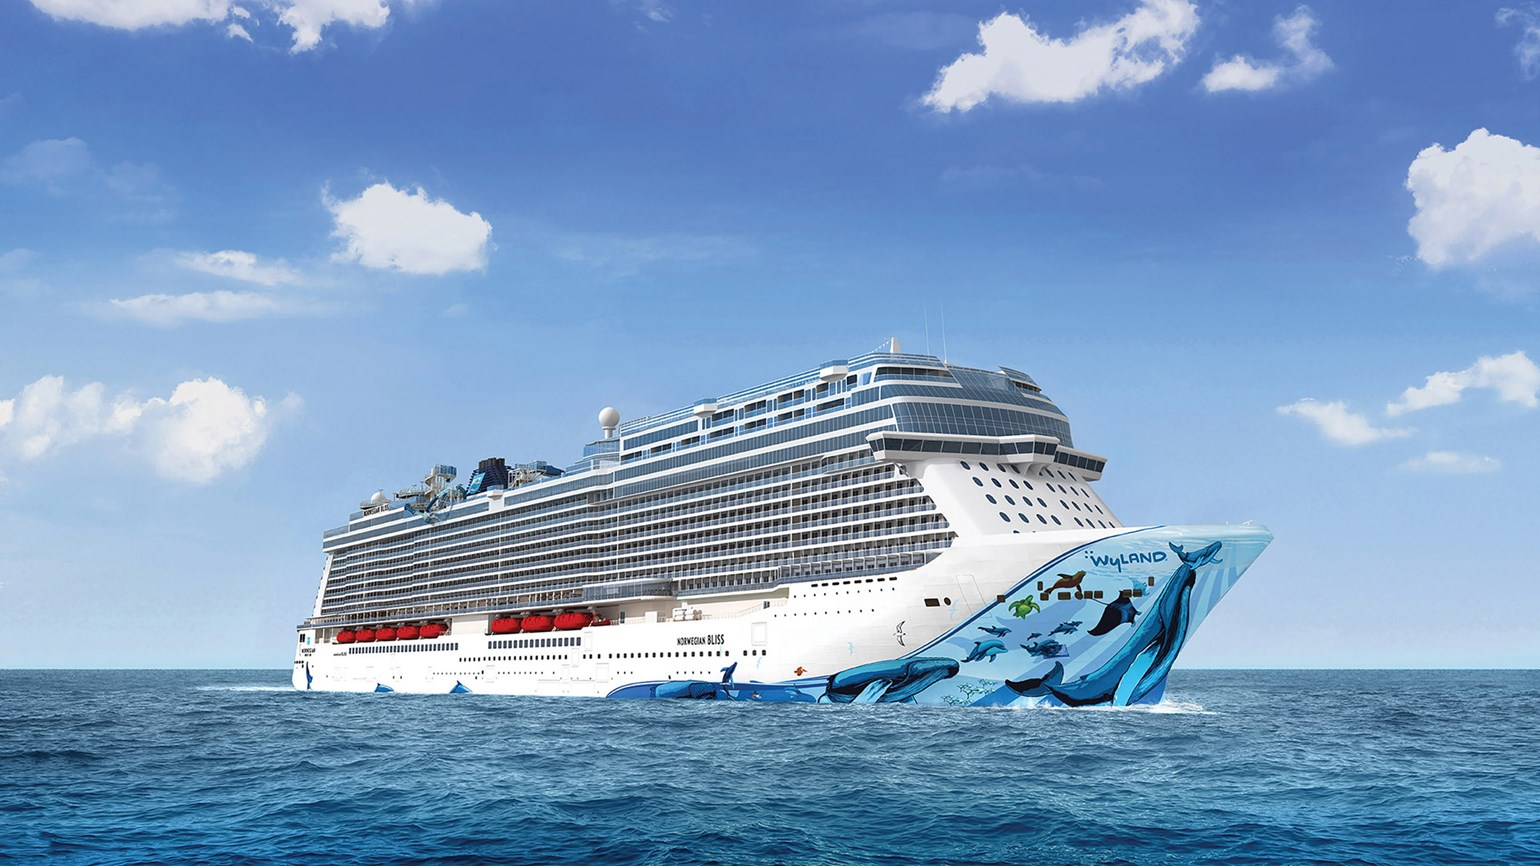 We Travel 2u Cruise Tiket Genting Dream Special New Year Dep 30 December 2018 The Norwegian Bliss Shown Here In A Rendering Will Make June Debut Seattle Long Beach Calif For Years Agents On West Coast Have Pleaded